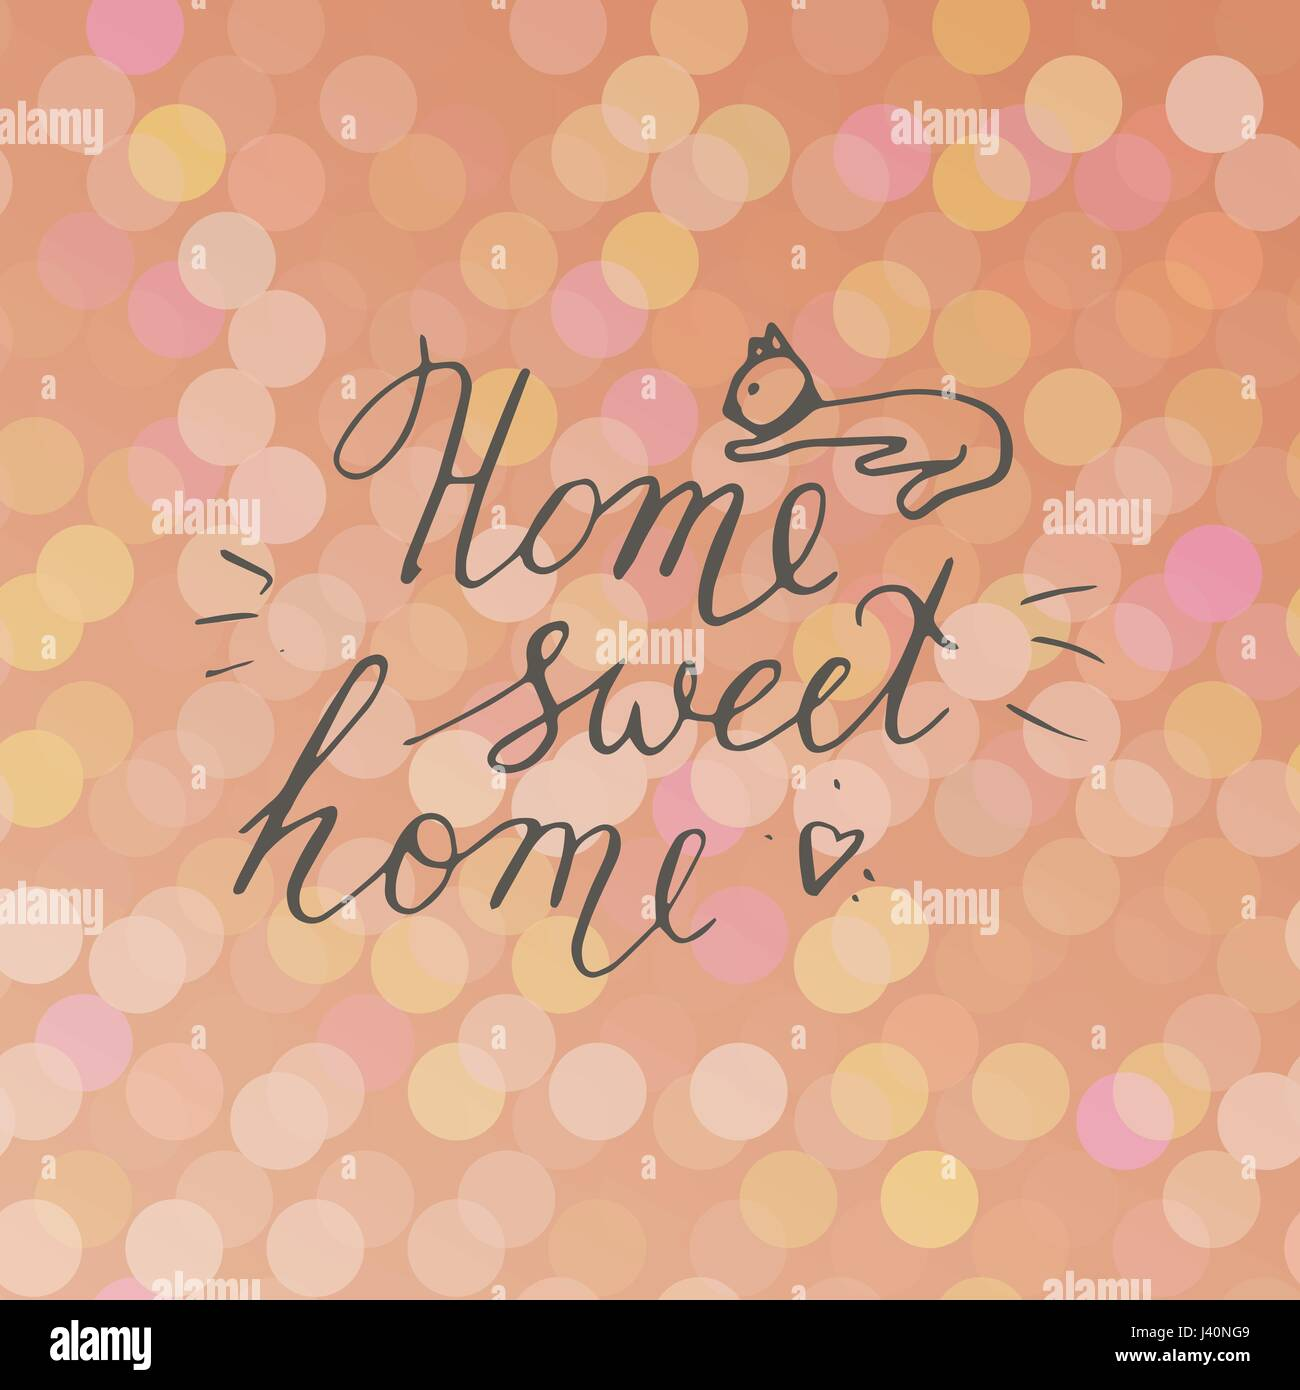 Home sweet home postcard with cat. Hand drawn vector background. Ink illustration. Modern brush calligraphy. - Stock Vector